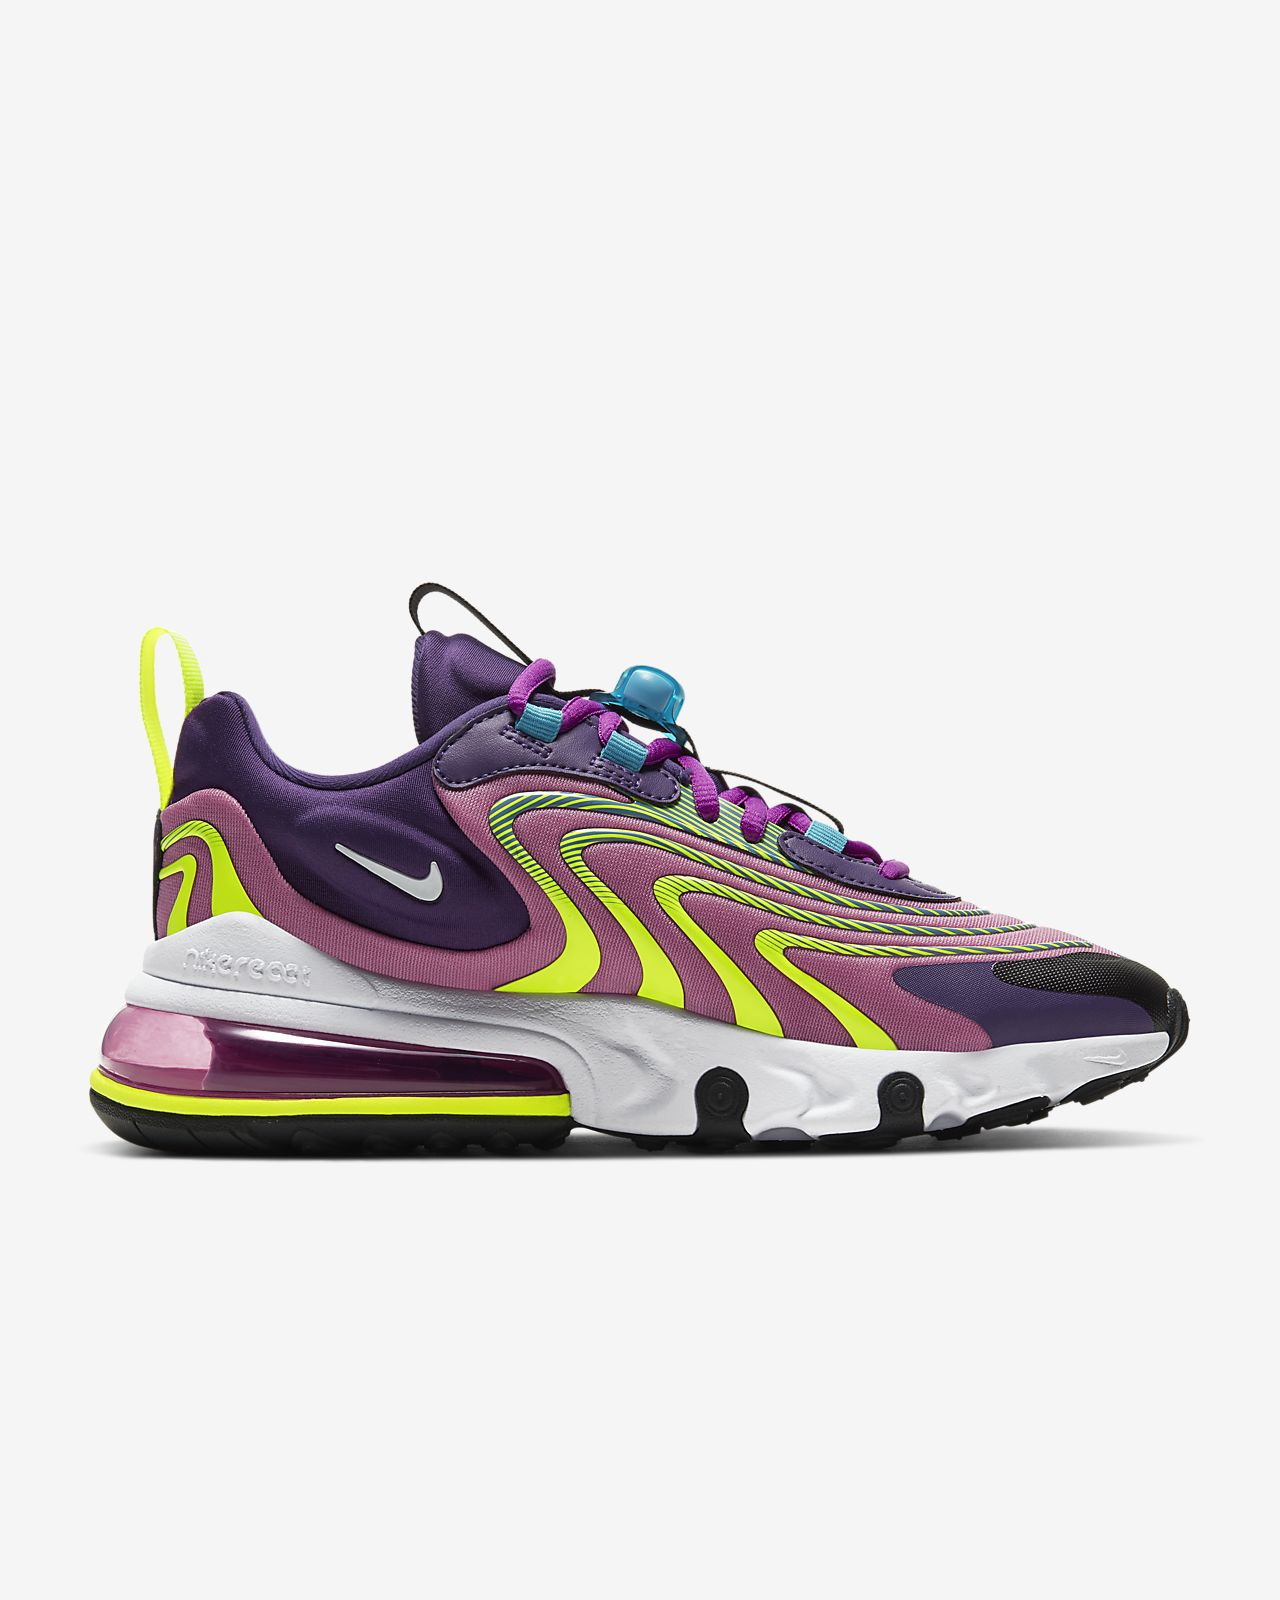 Nike Air Max 270 ENG Men's Shoe